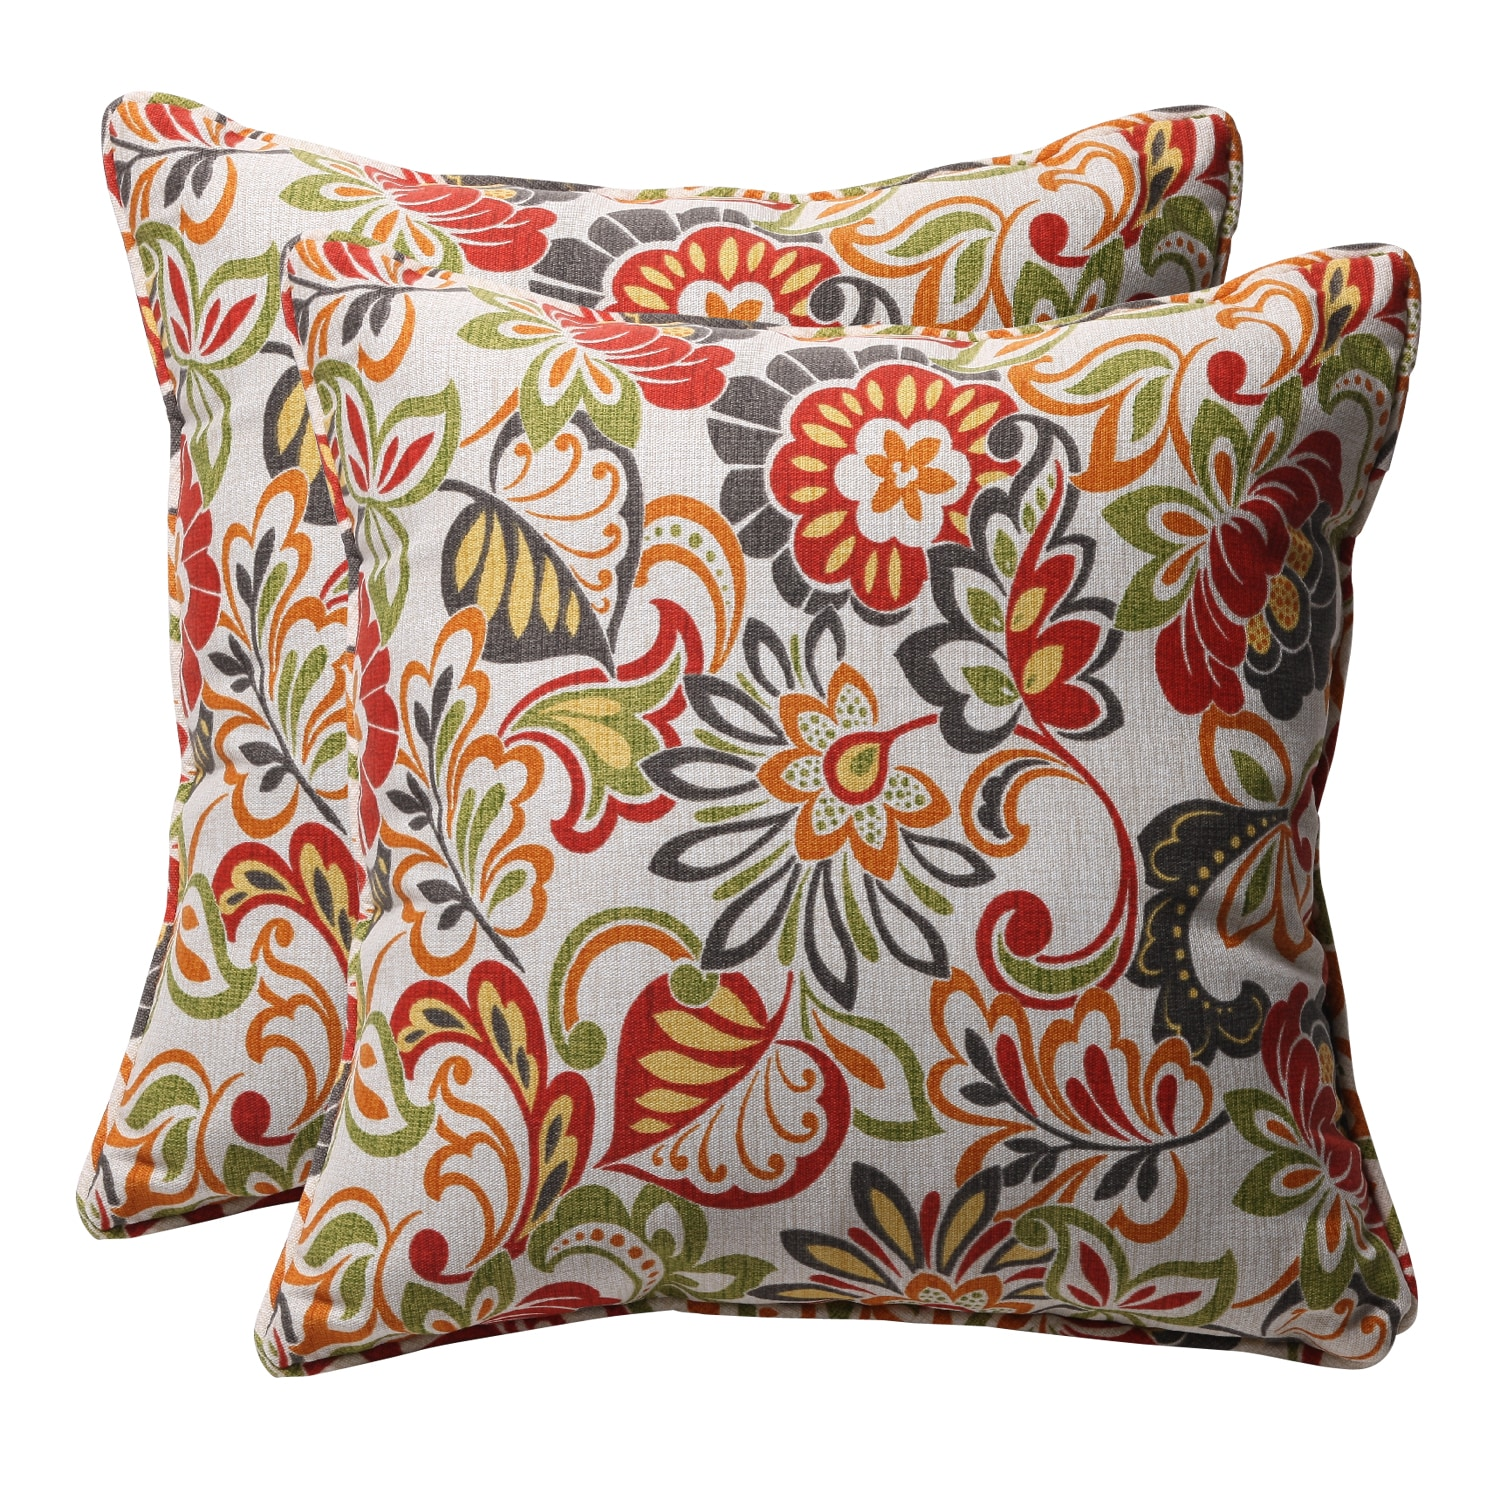 Patterned Outdoor Throw Pillows 6